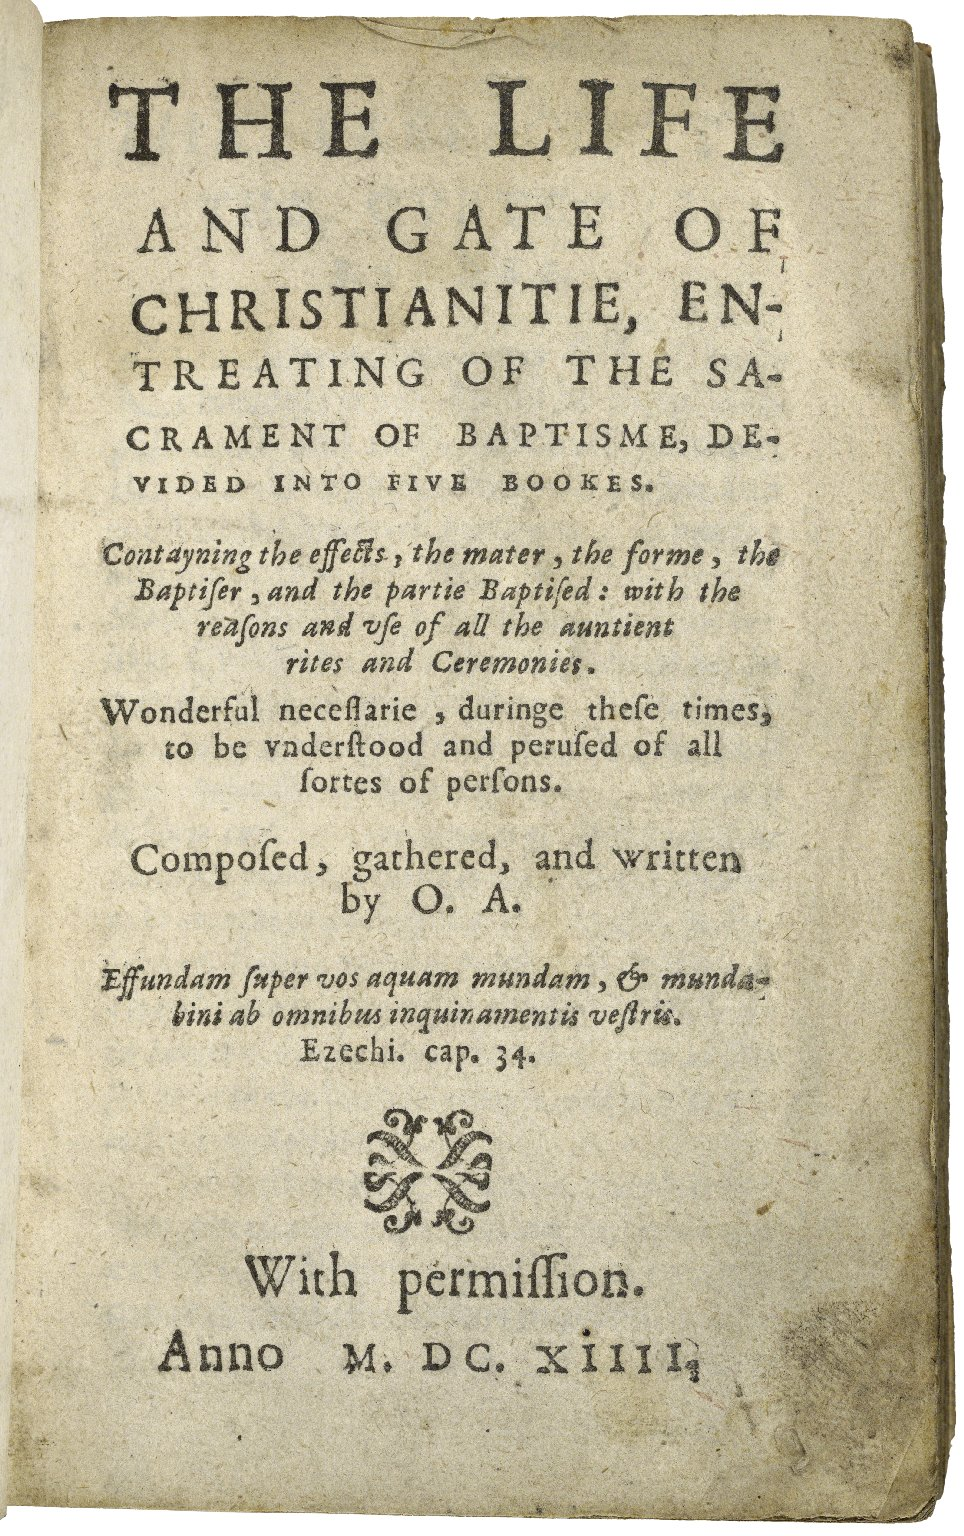 The life and gate of Christianitie, entreating of the sacrament of baptisme, deuided into five bookes. Contayning the effects, the mater, the forme, the baptiser, and the partie baptised: with the reasons and use of all the auntient rites and ceremonies. ... Composed, gathered, and written by O.A. ...